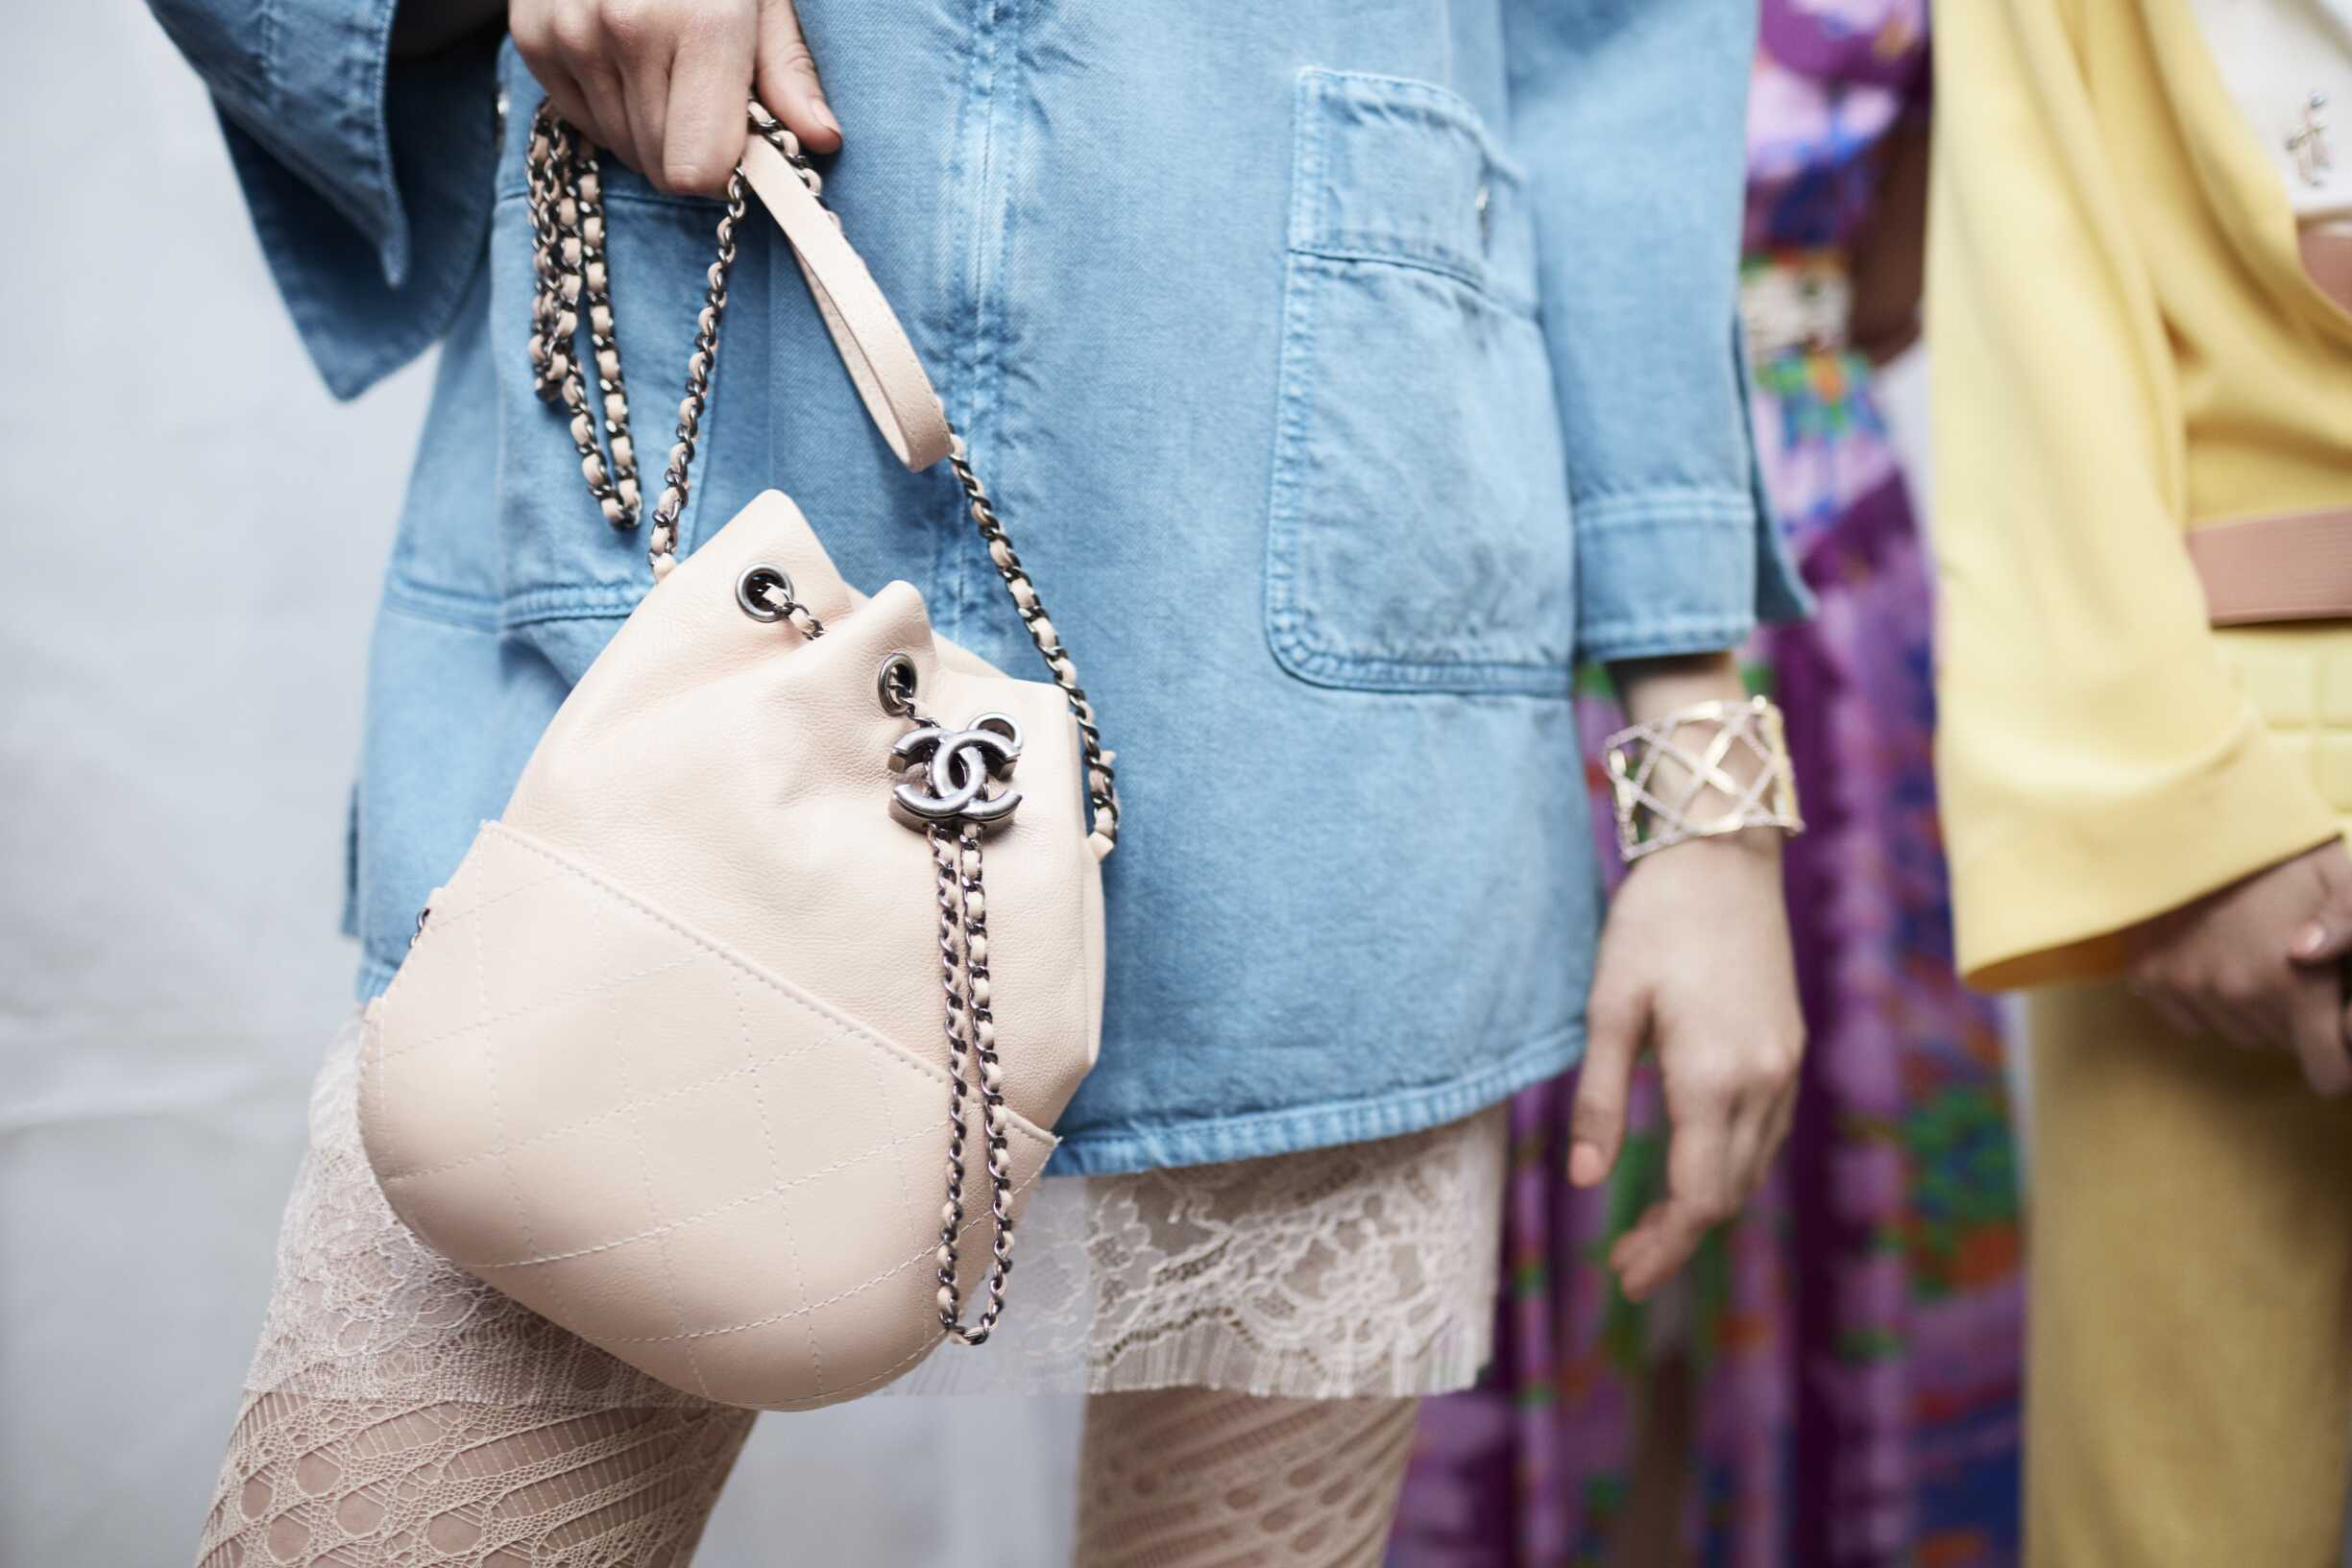 Bag Chanel Trends